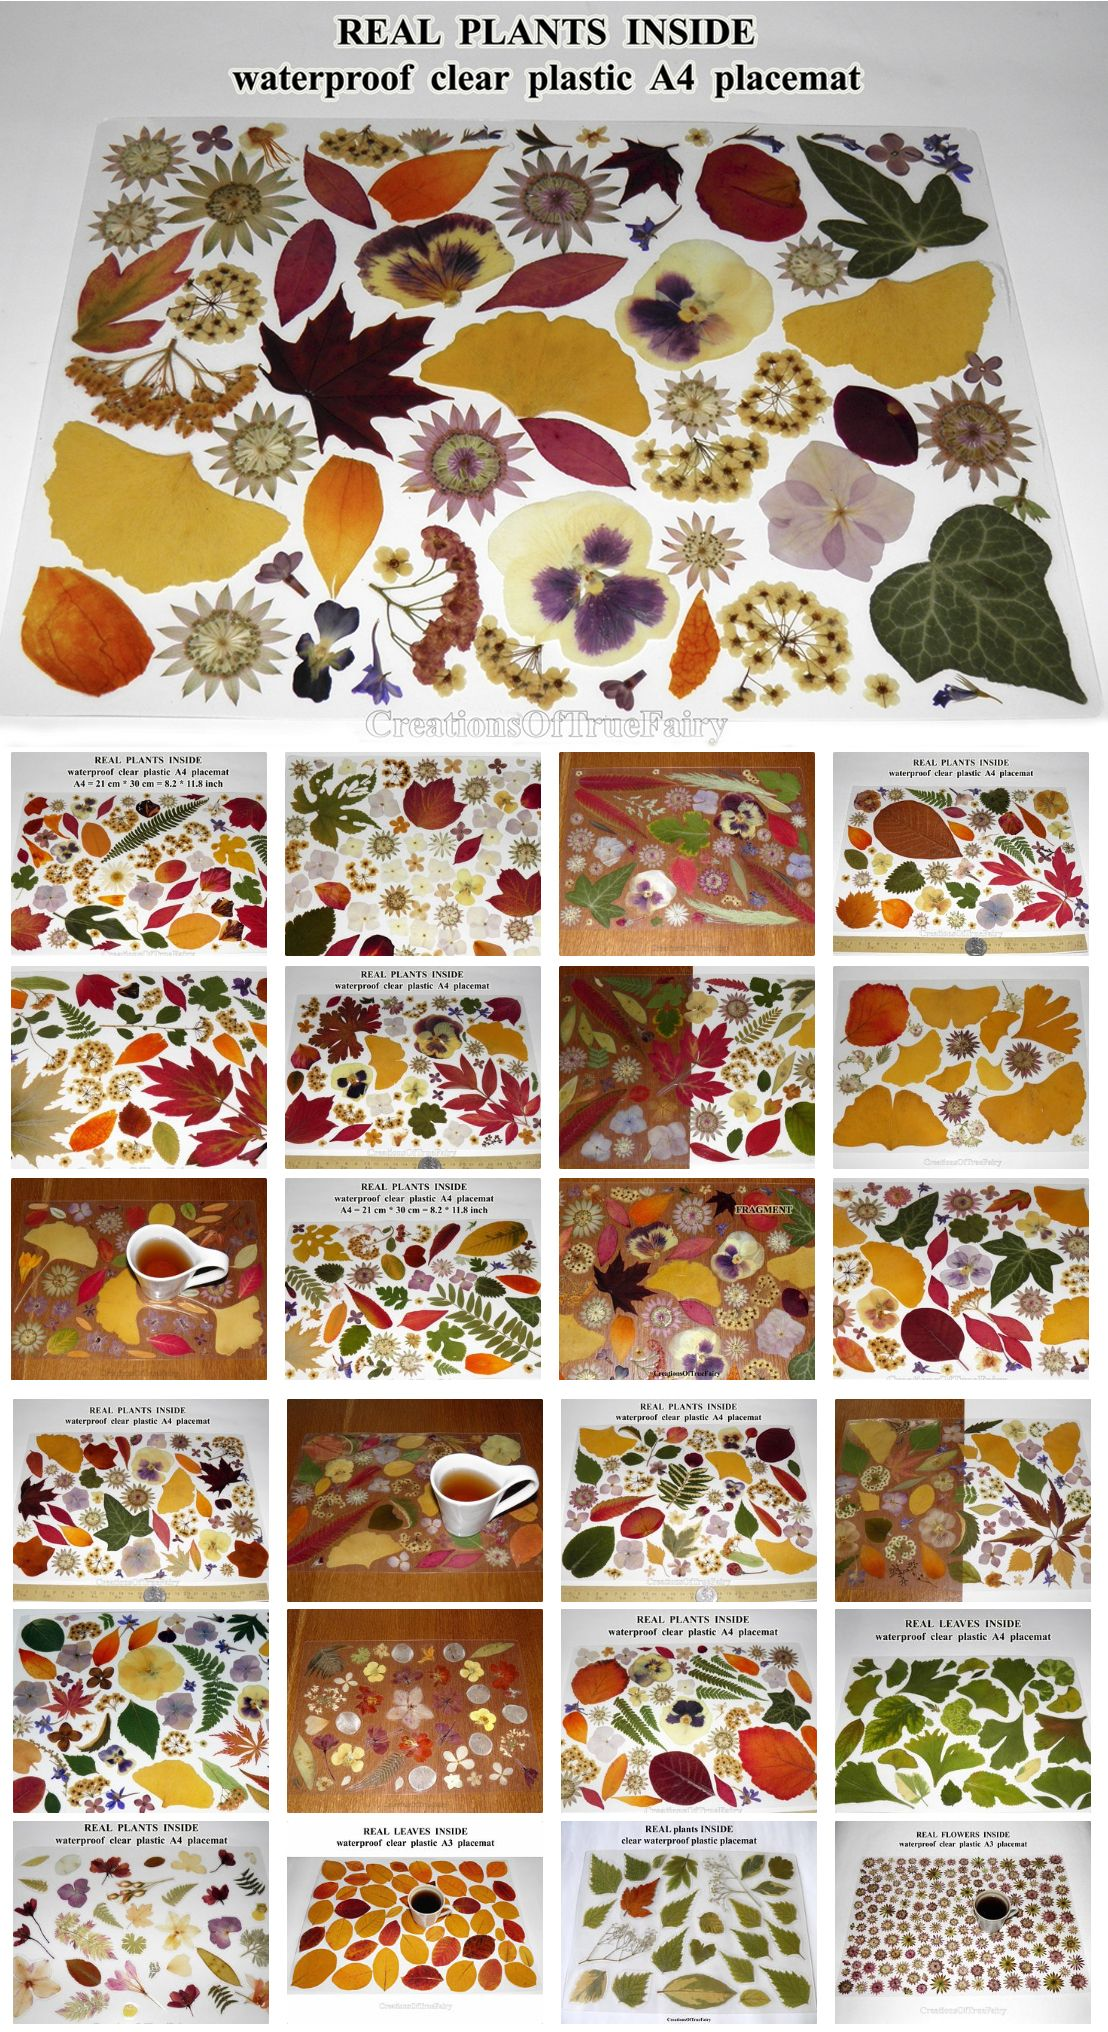 Vinyl Placemats With Real Flowers And Leaves In 2020 Botanical Placemats Flower Decorations Dinner Table Decor